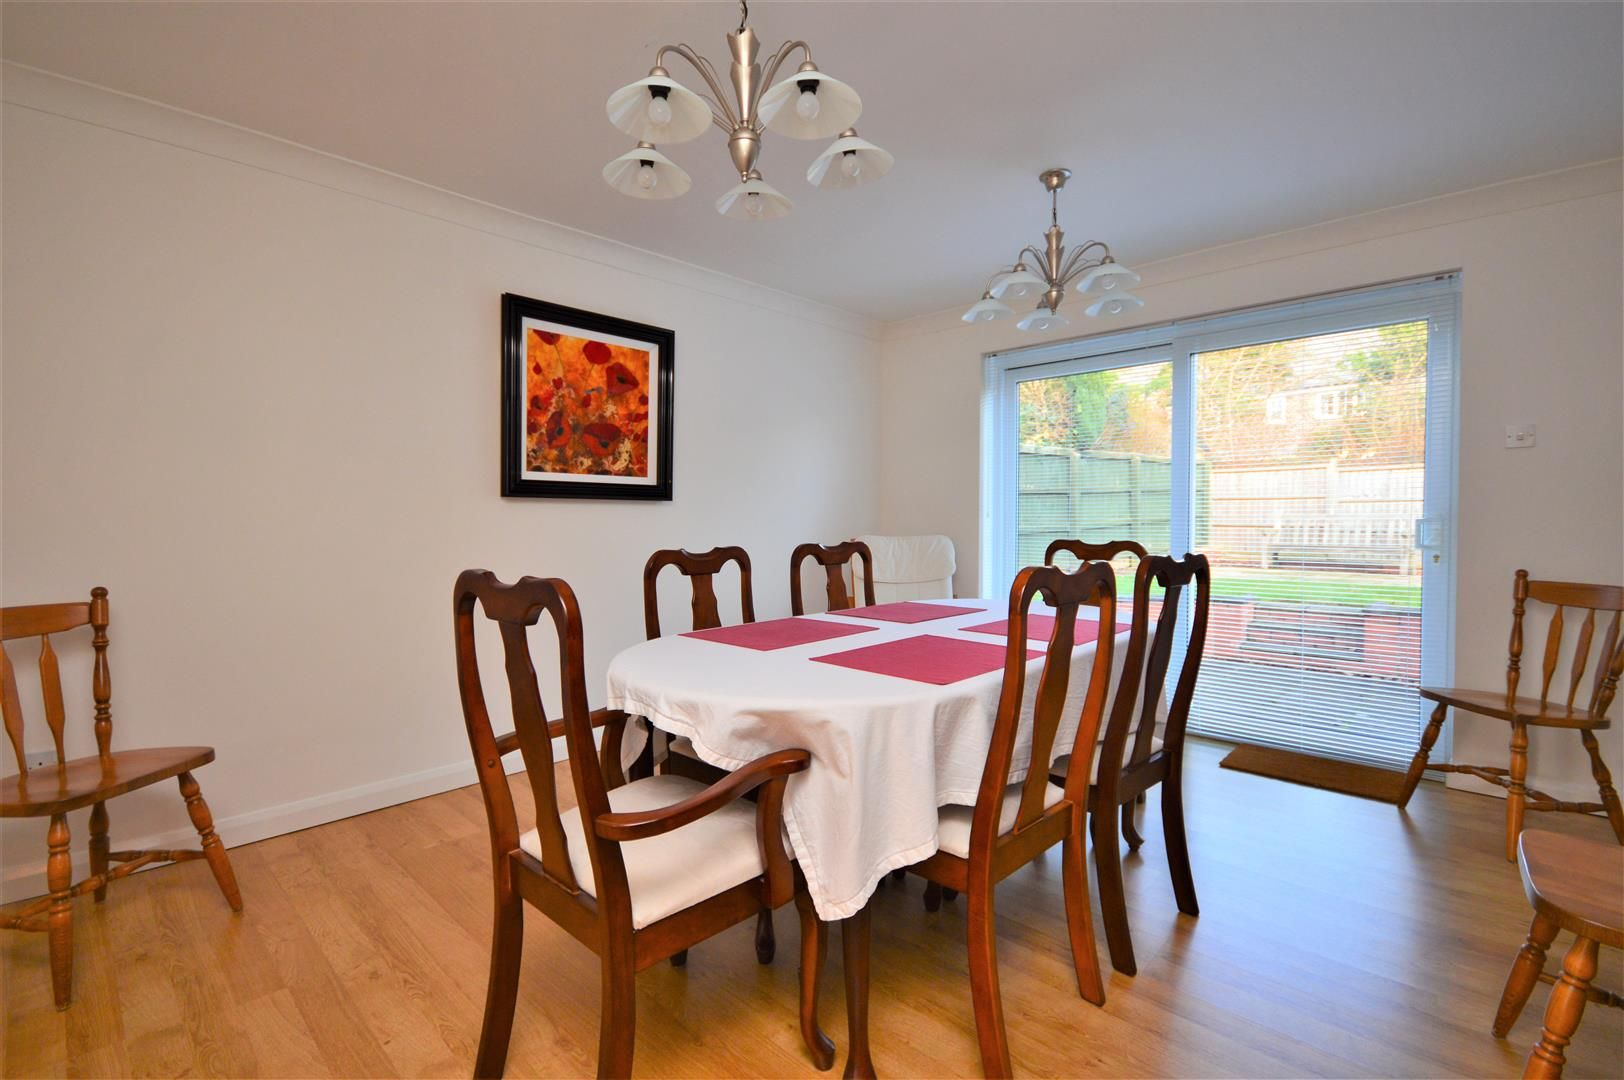 4 bed detached for sale in Hereford 4